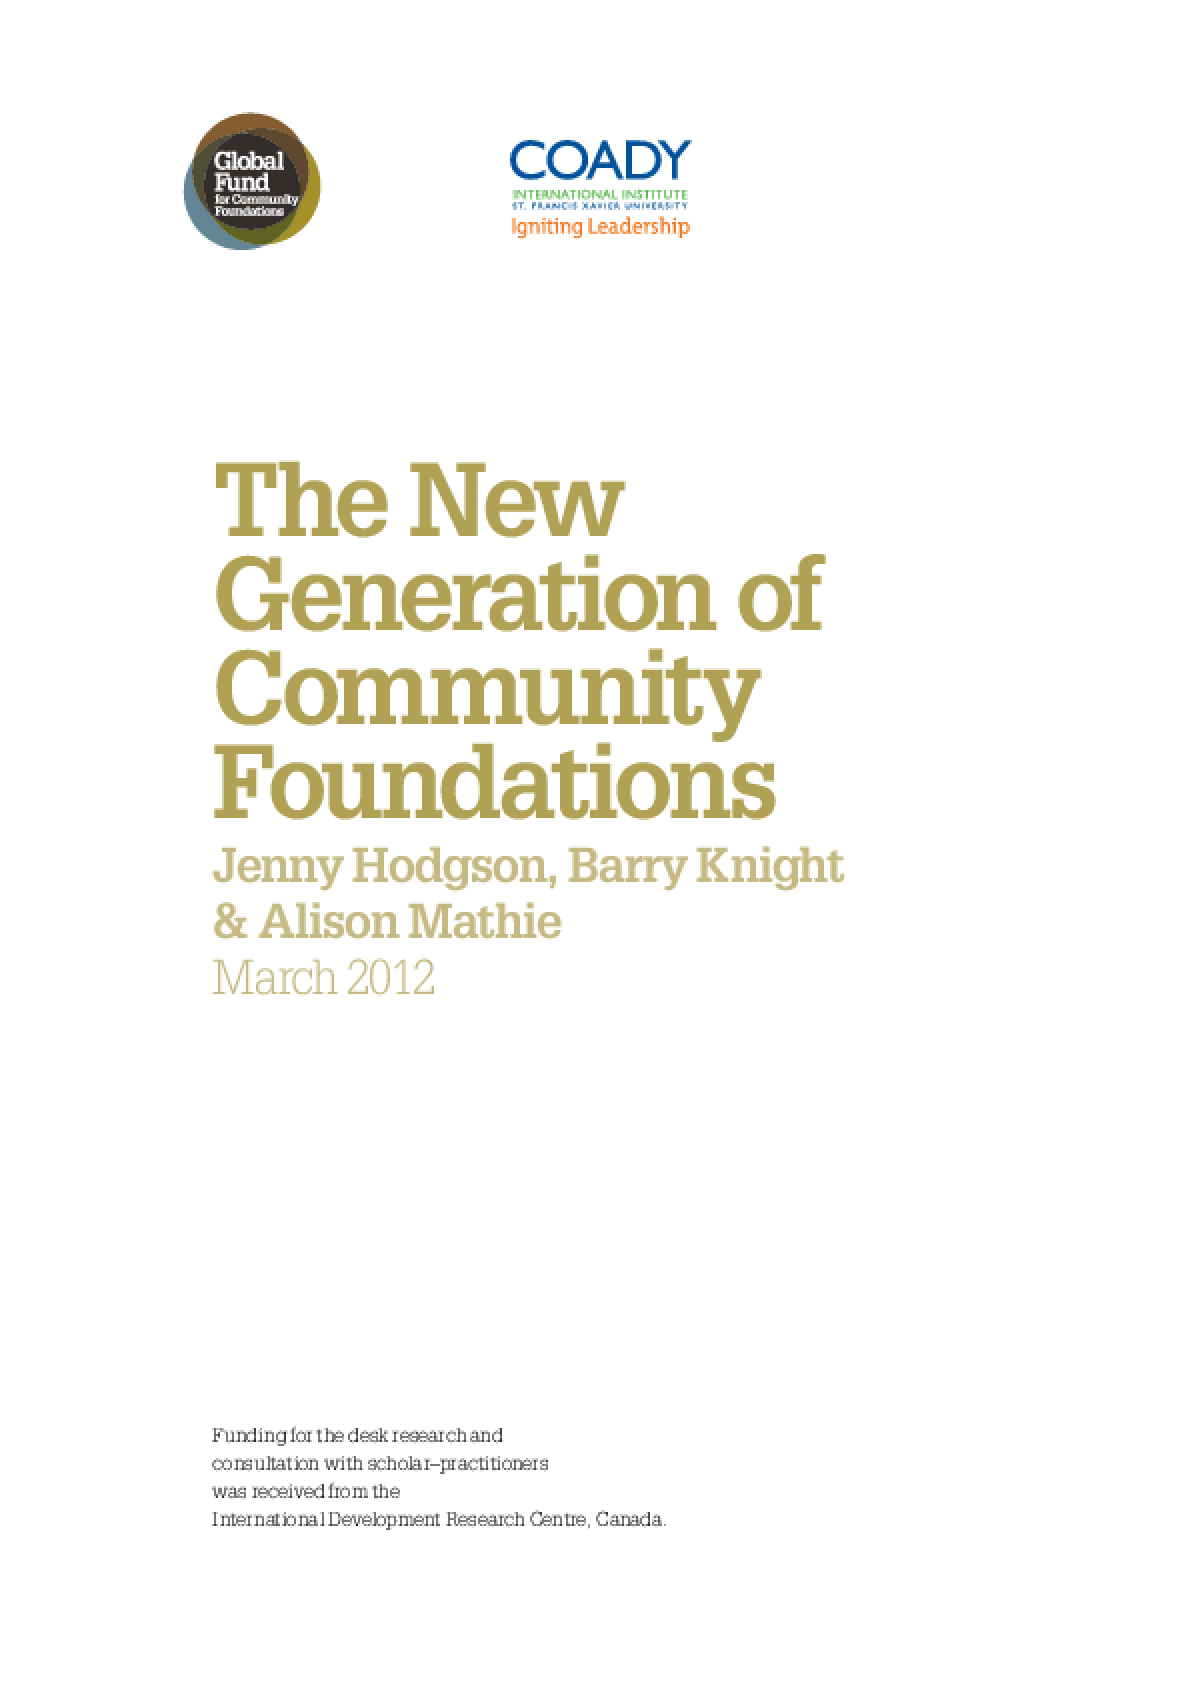 The New Generation of Community Foundations